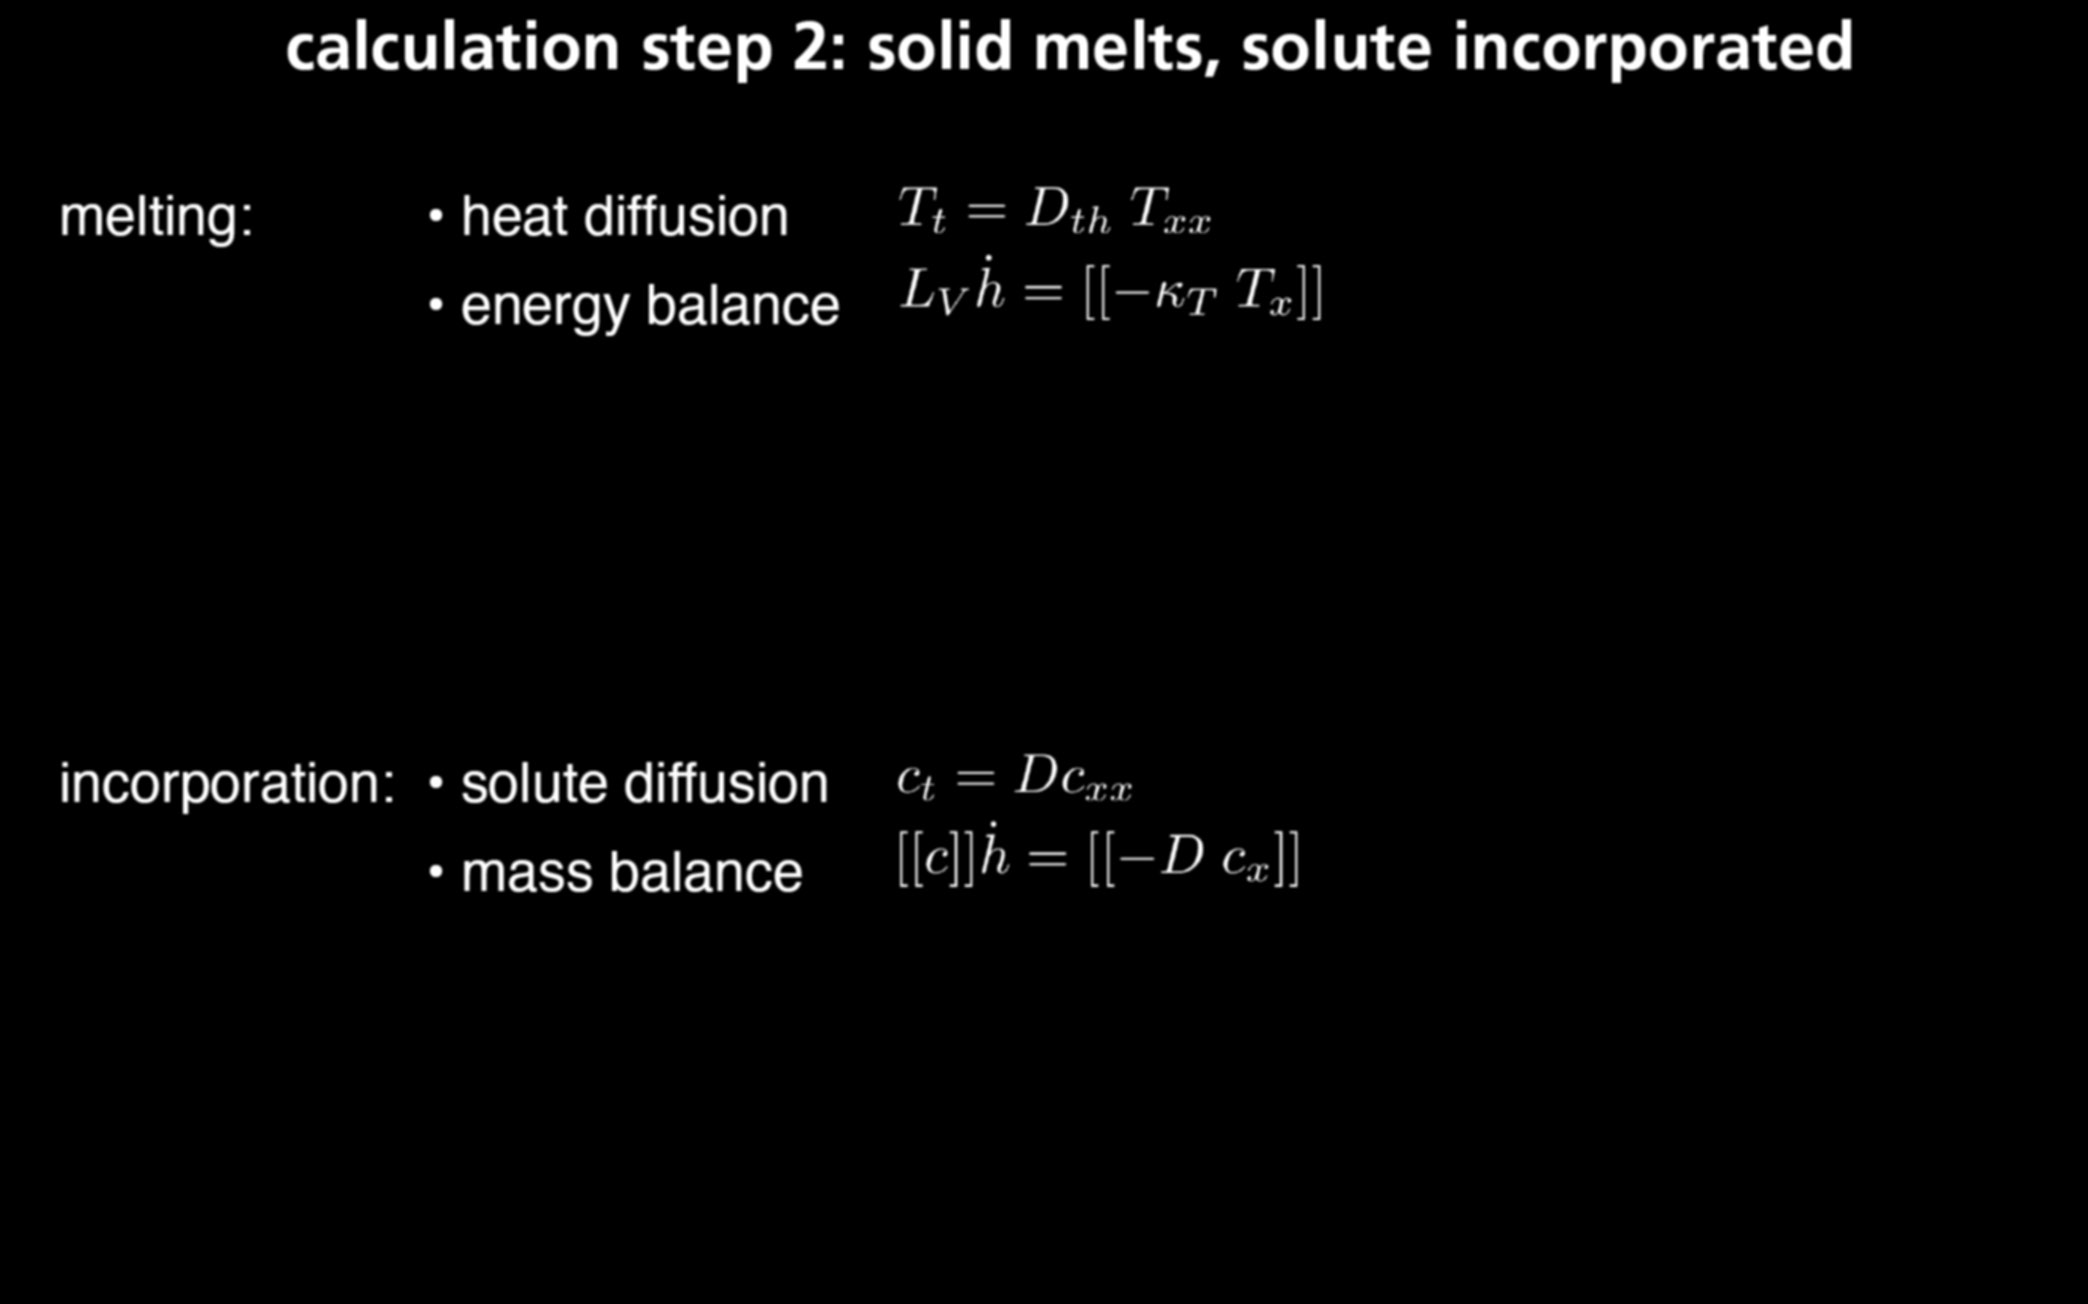 Optimizing dopant profile calculation step 2: solid melts, solute incorporated